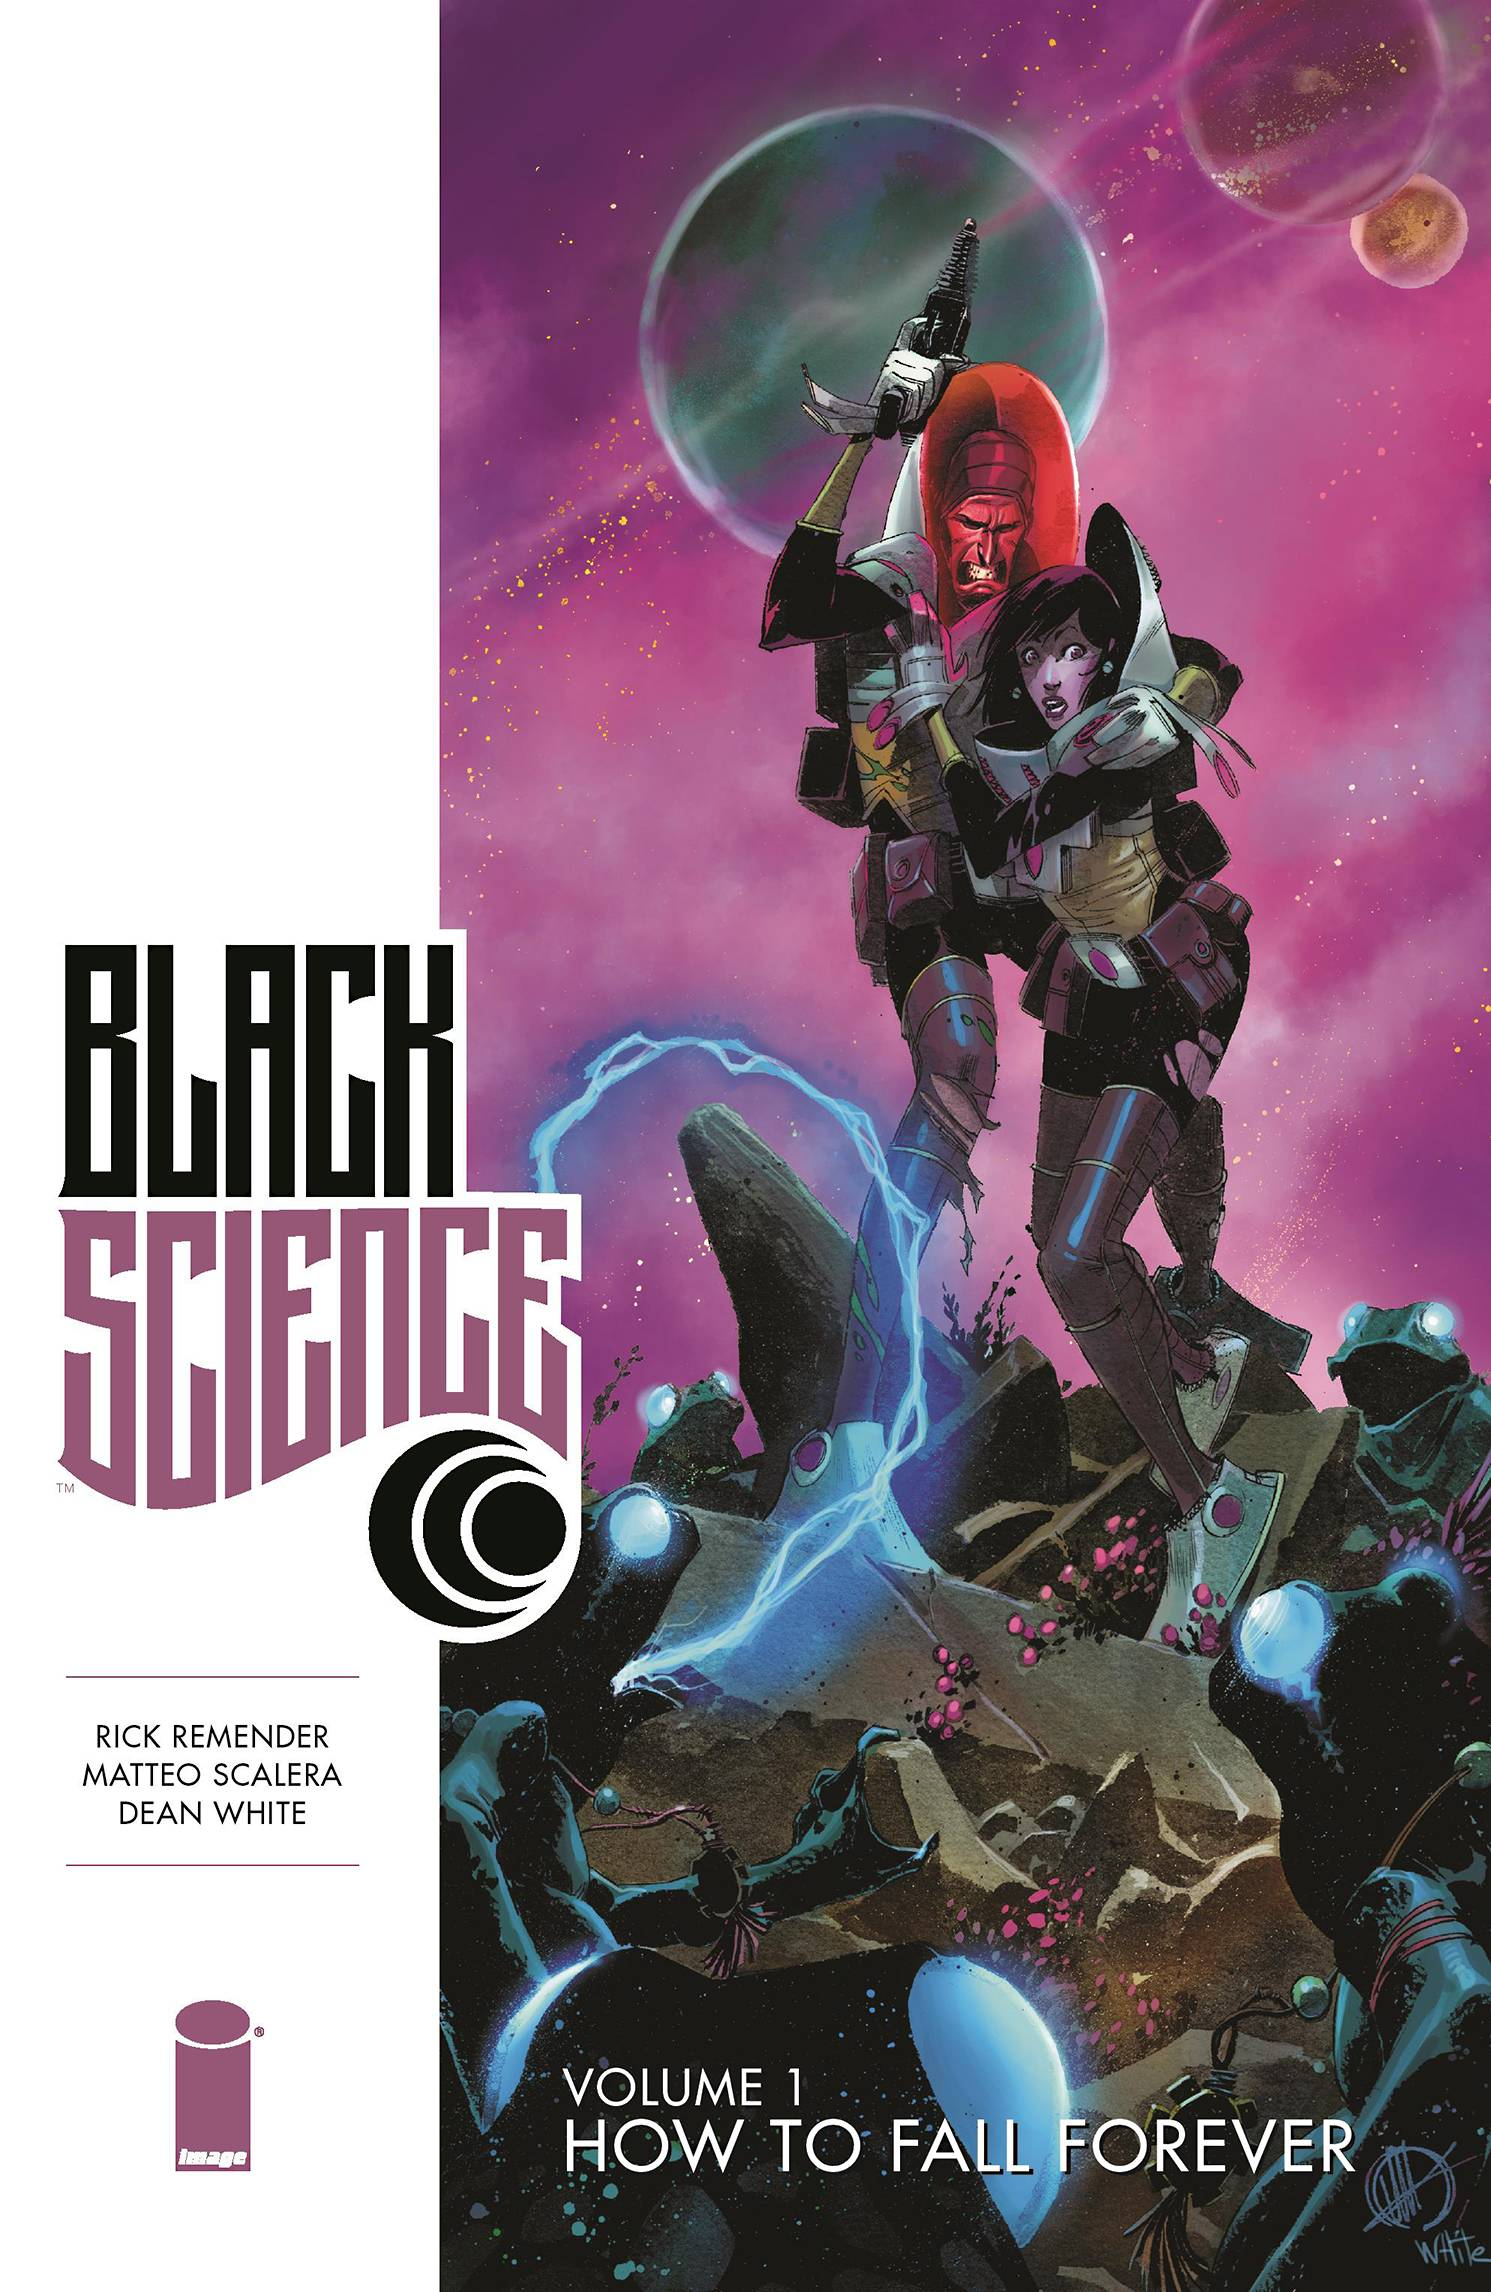 BLACK SCIENCE TP VOL 01 HOW TO FALL FOREVER (MAR140535) (MR)